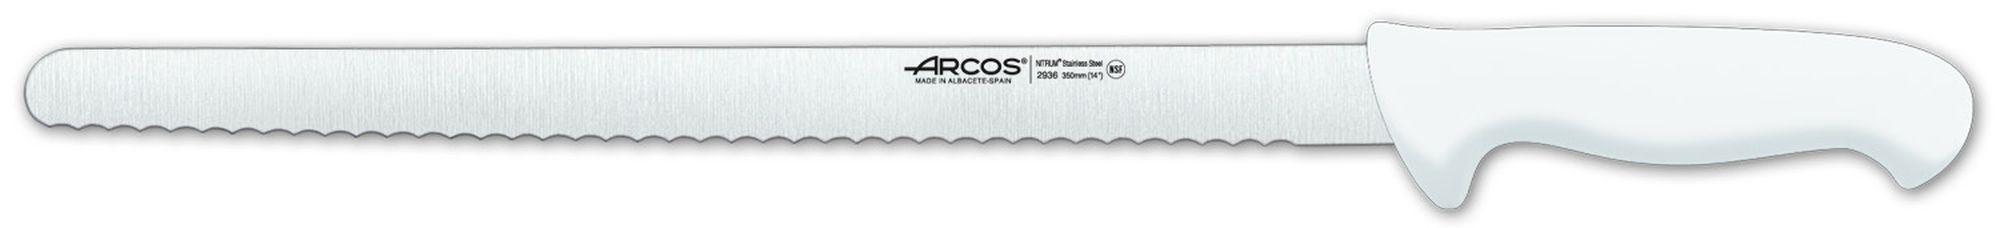 Pastry Knife - Flexible Arcos ref.: 293624